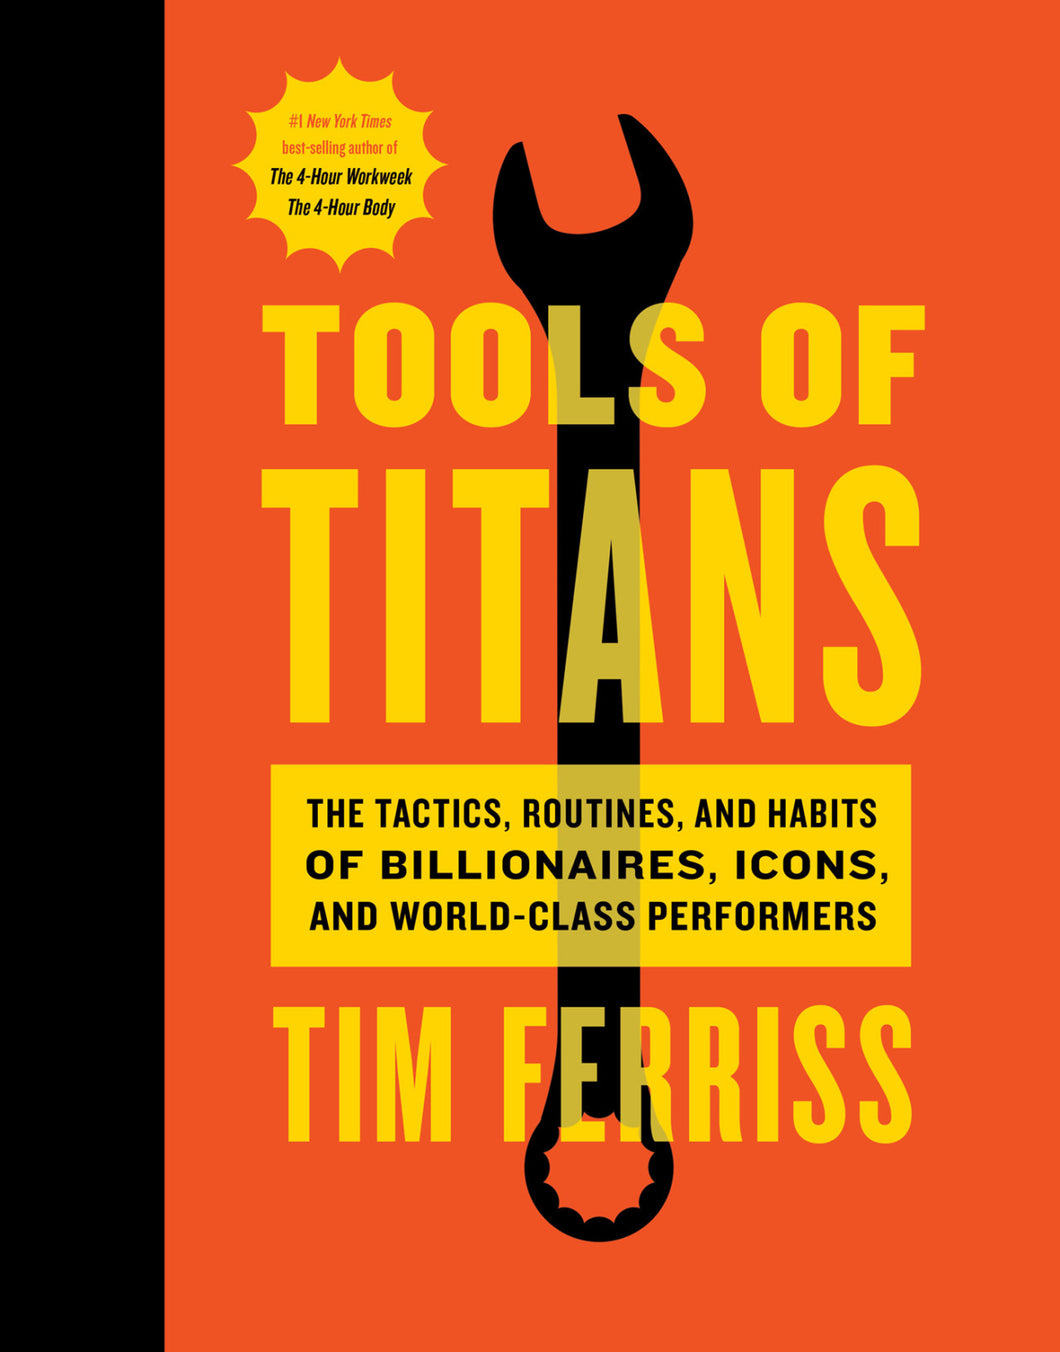 Tools of Titans: Tactics, Routines & Habits of Billionaires, Icons and World Class Performers: eBook, ePUB, Mobi, PDF (Fast instant delivery)